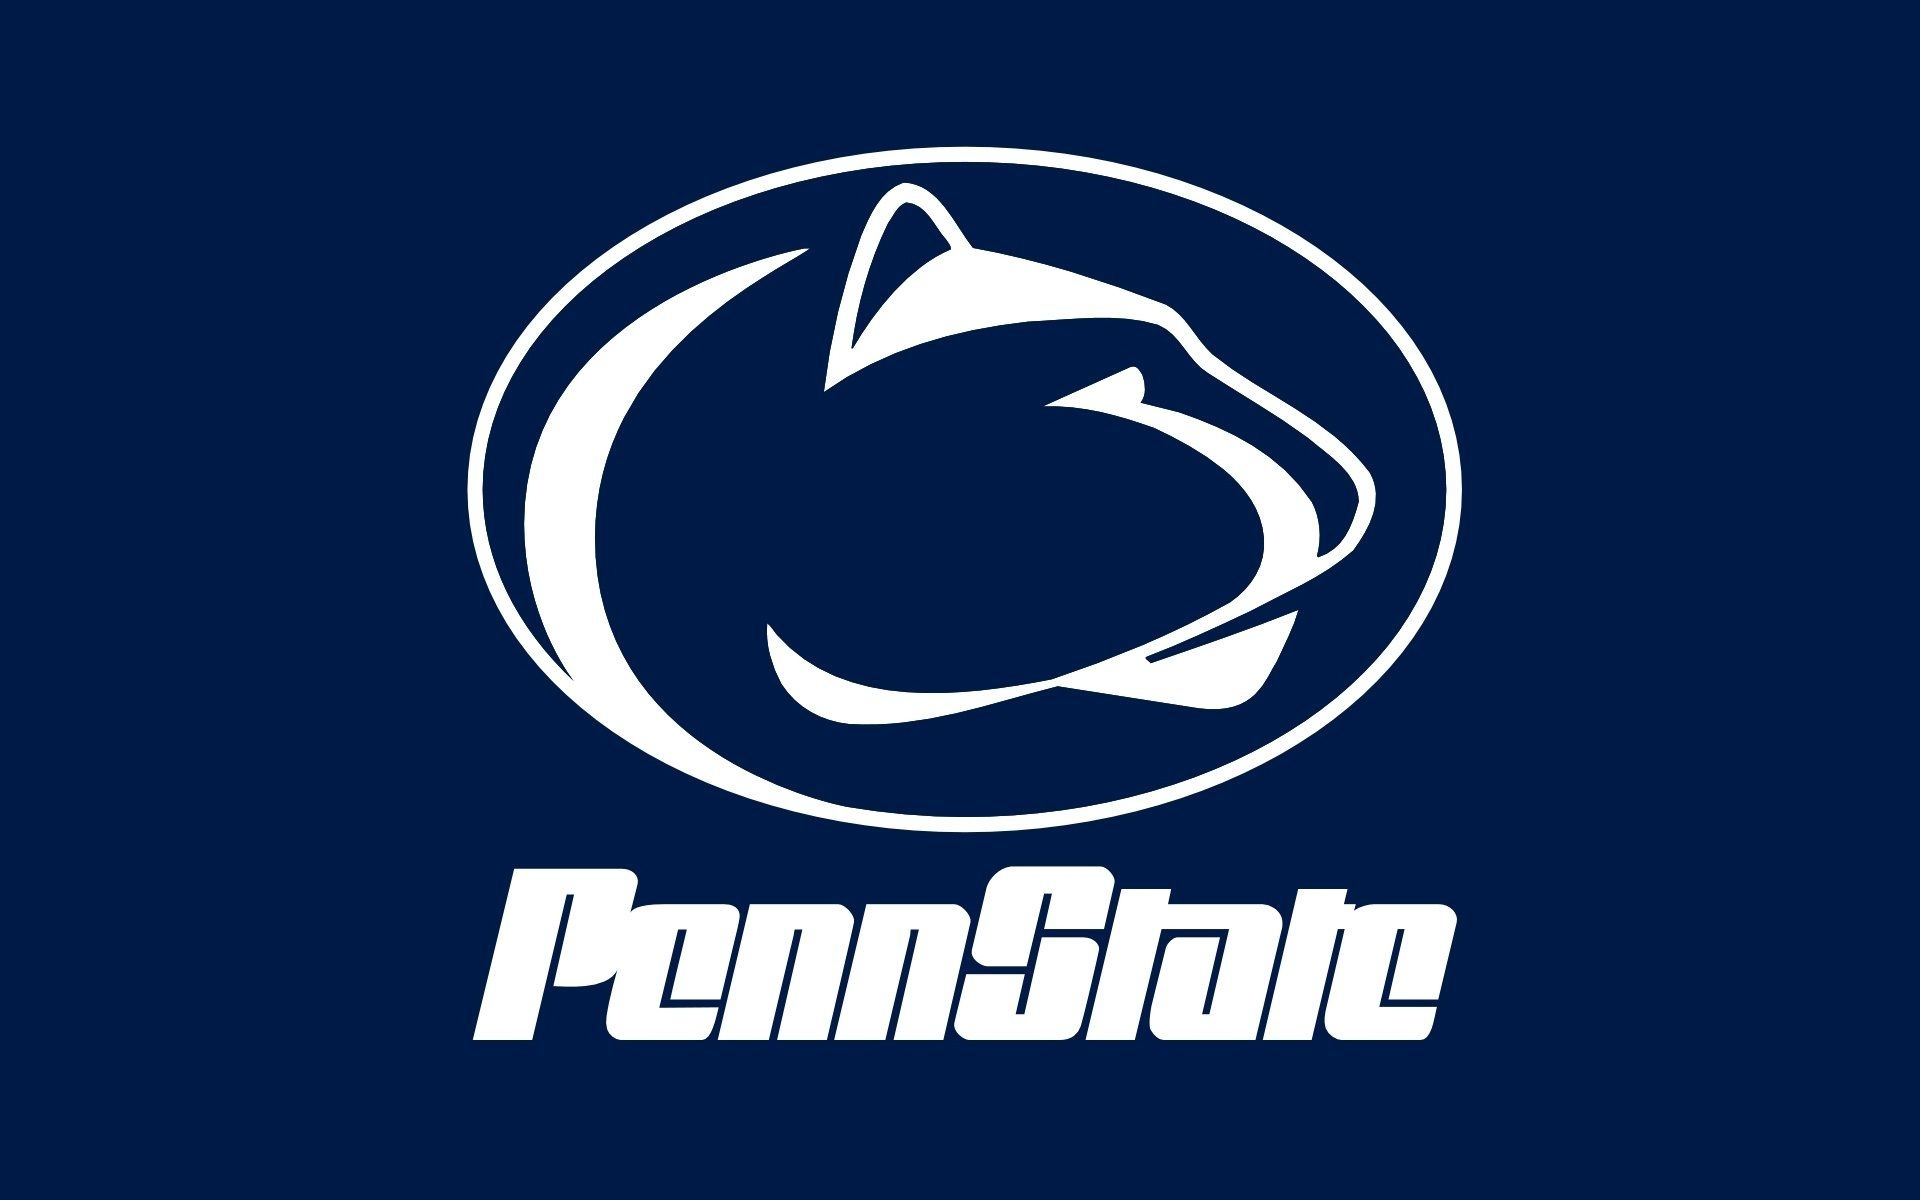 10 New Penn State Desktop Wallpaper FULL HD 1080p For PC Background